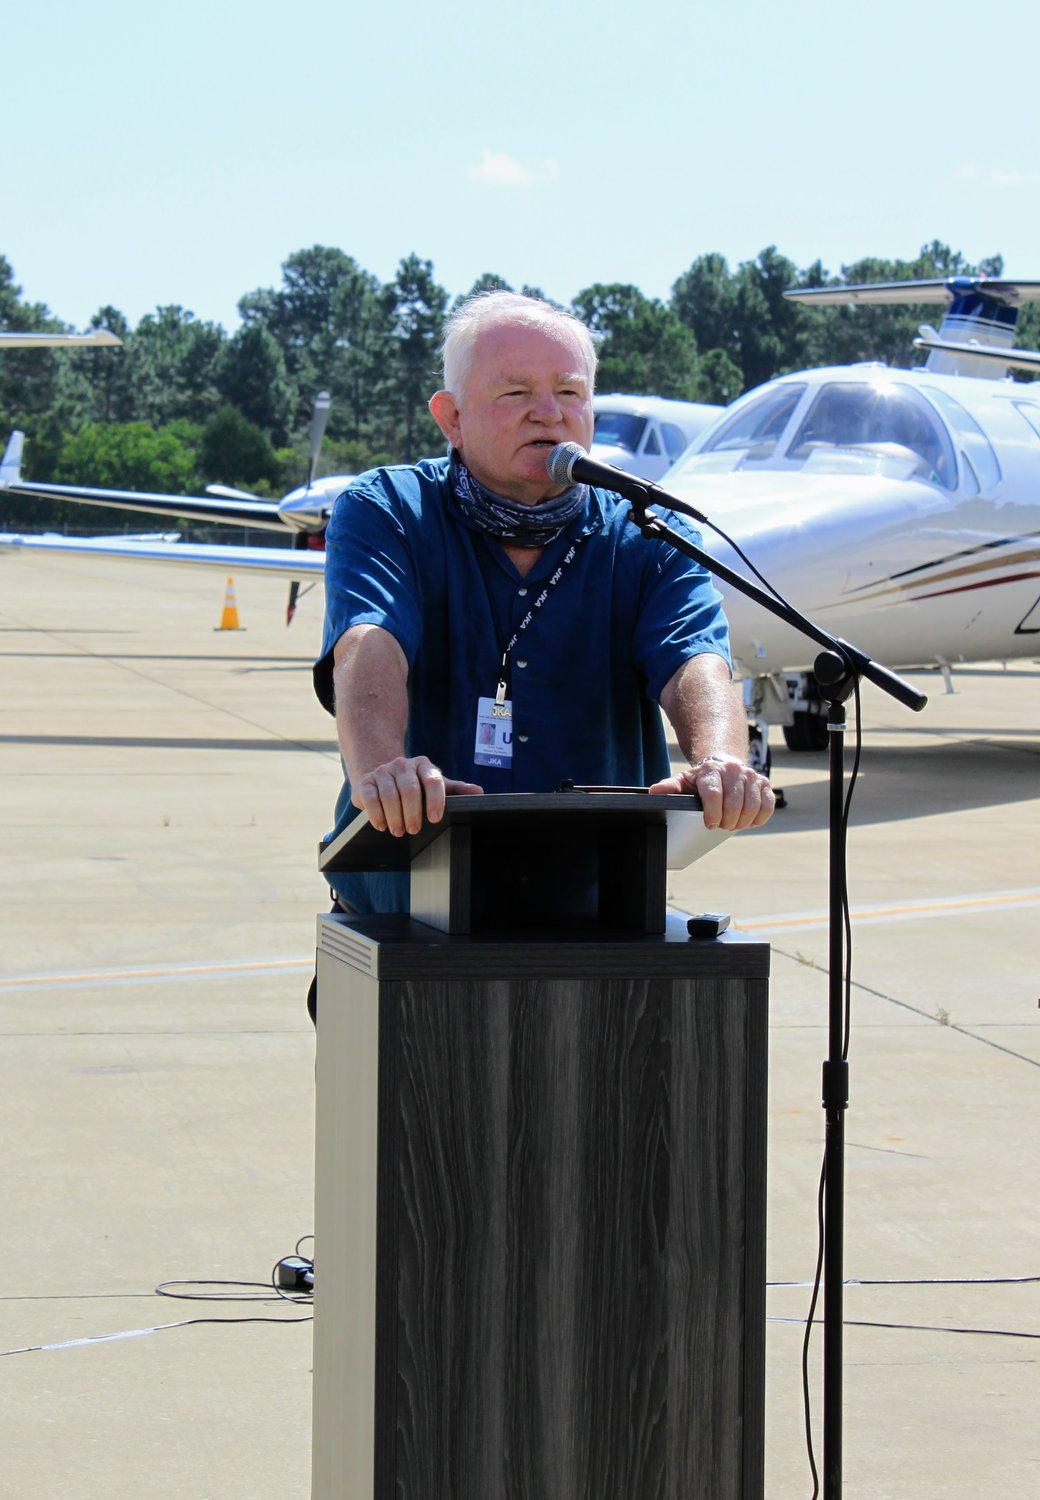 Scott Fuller, Airport Authority manager spoke to the large group gathered about those that have been involved in the long process of getting to this day. The Federal Aviation Administration awarded a $6 million grant just four days ago to cover 100% of the construction costs.